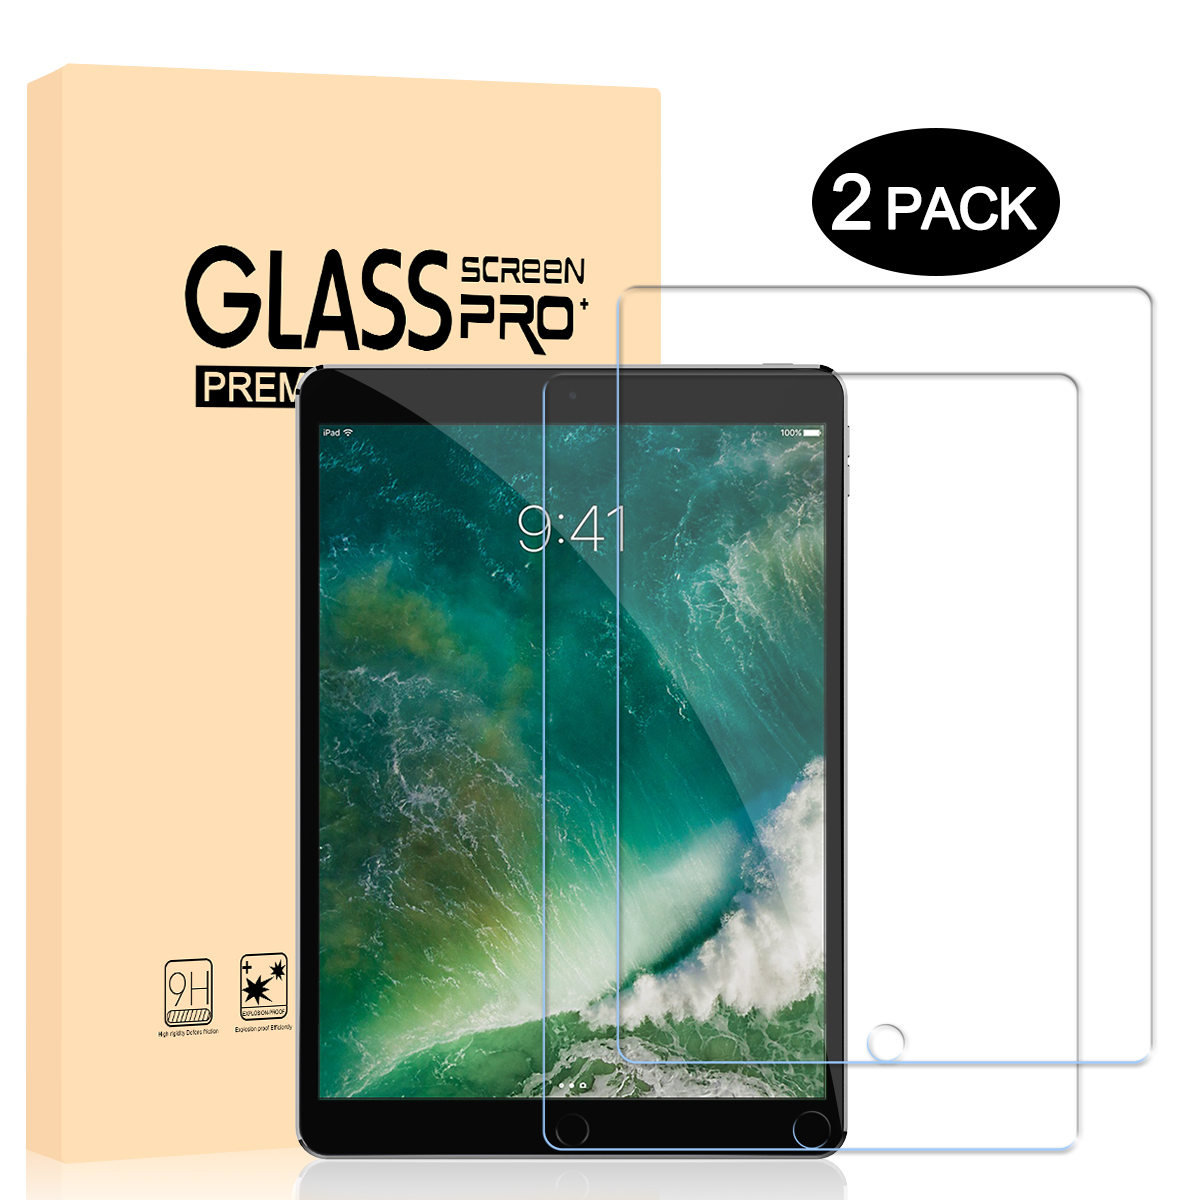 2pcs Tempered Glass for iPad 10.5 9H Screen Protector Flim For iPad10.5 Toughned Tablet Protective